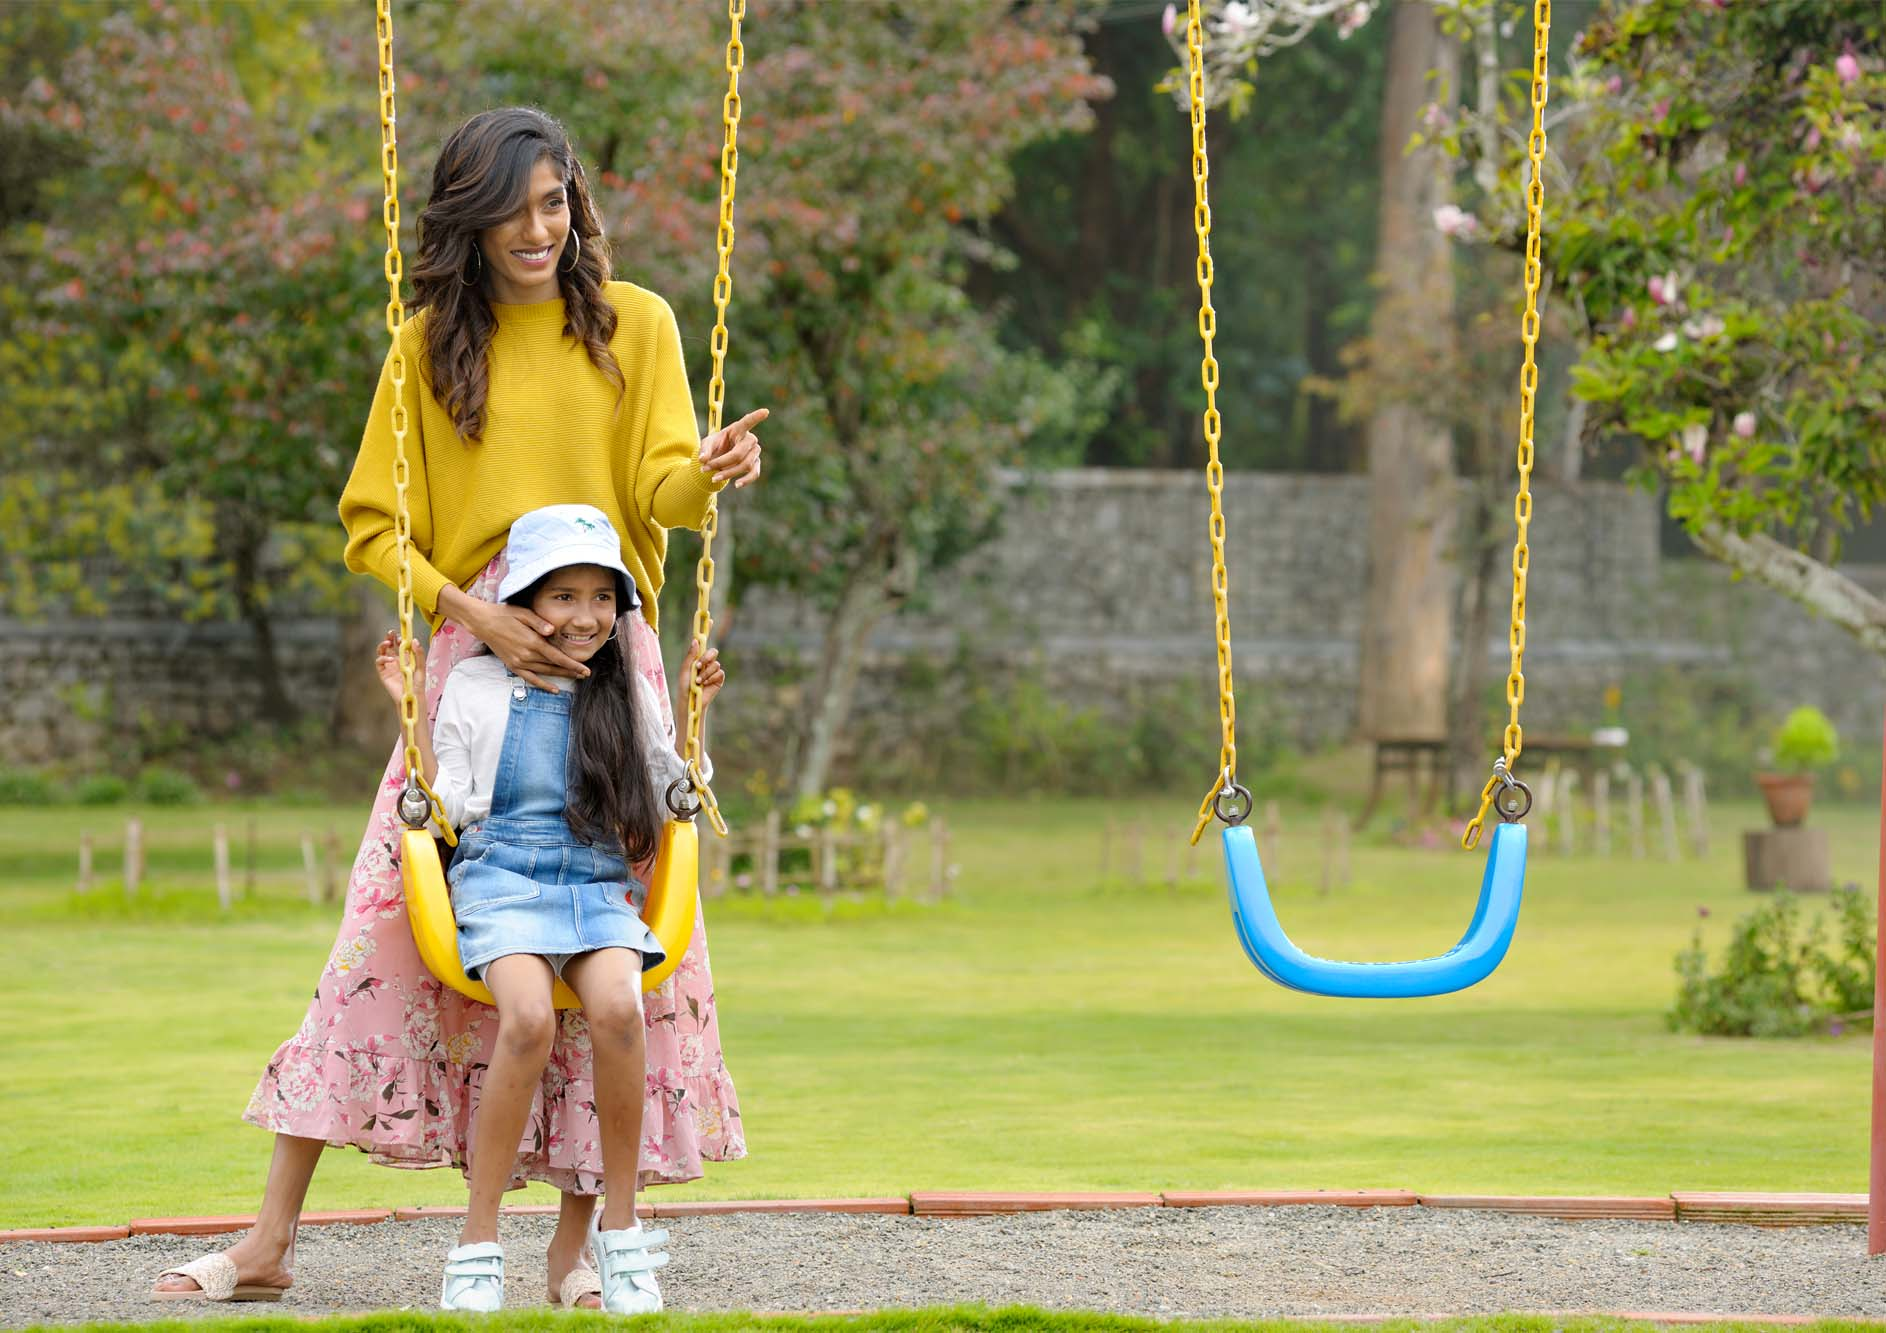 happy-mother-daughter-laughing-and-playing-swing-in-a-park